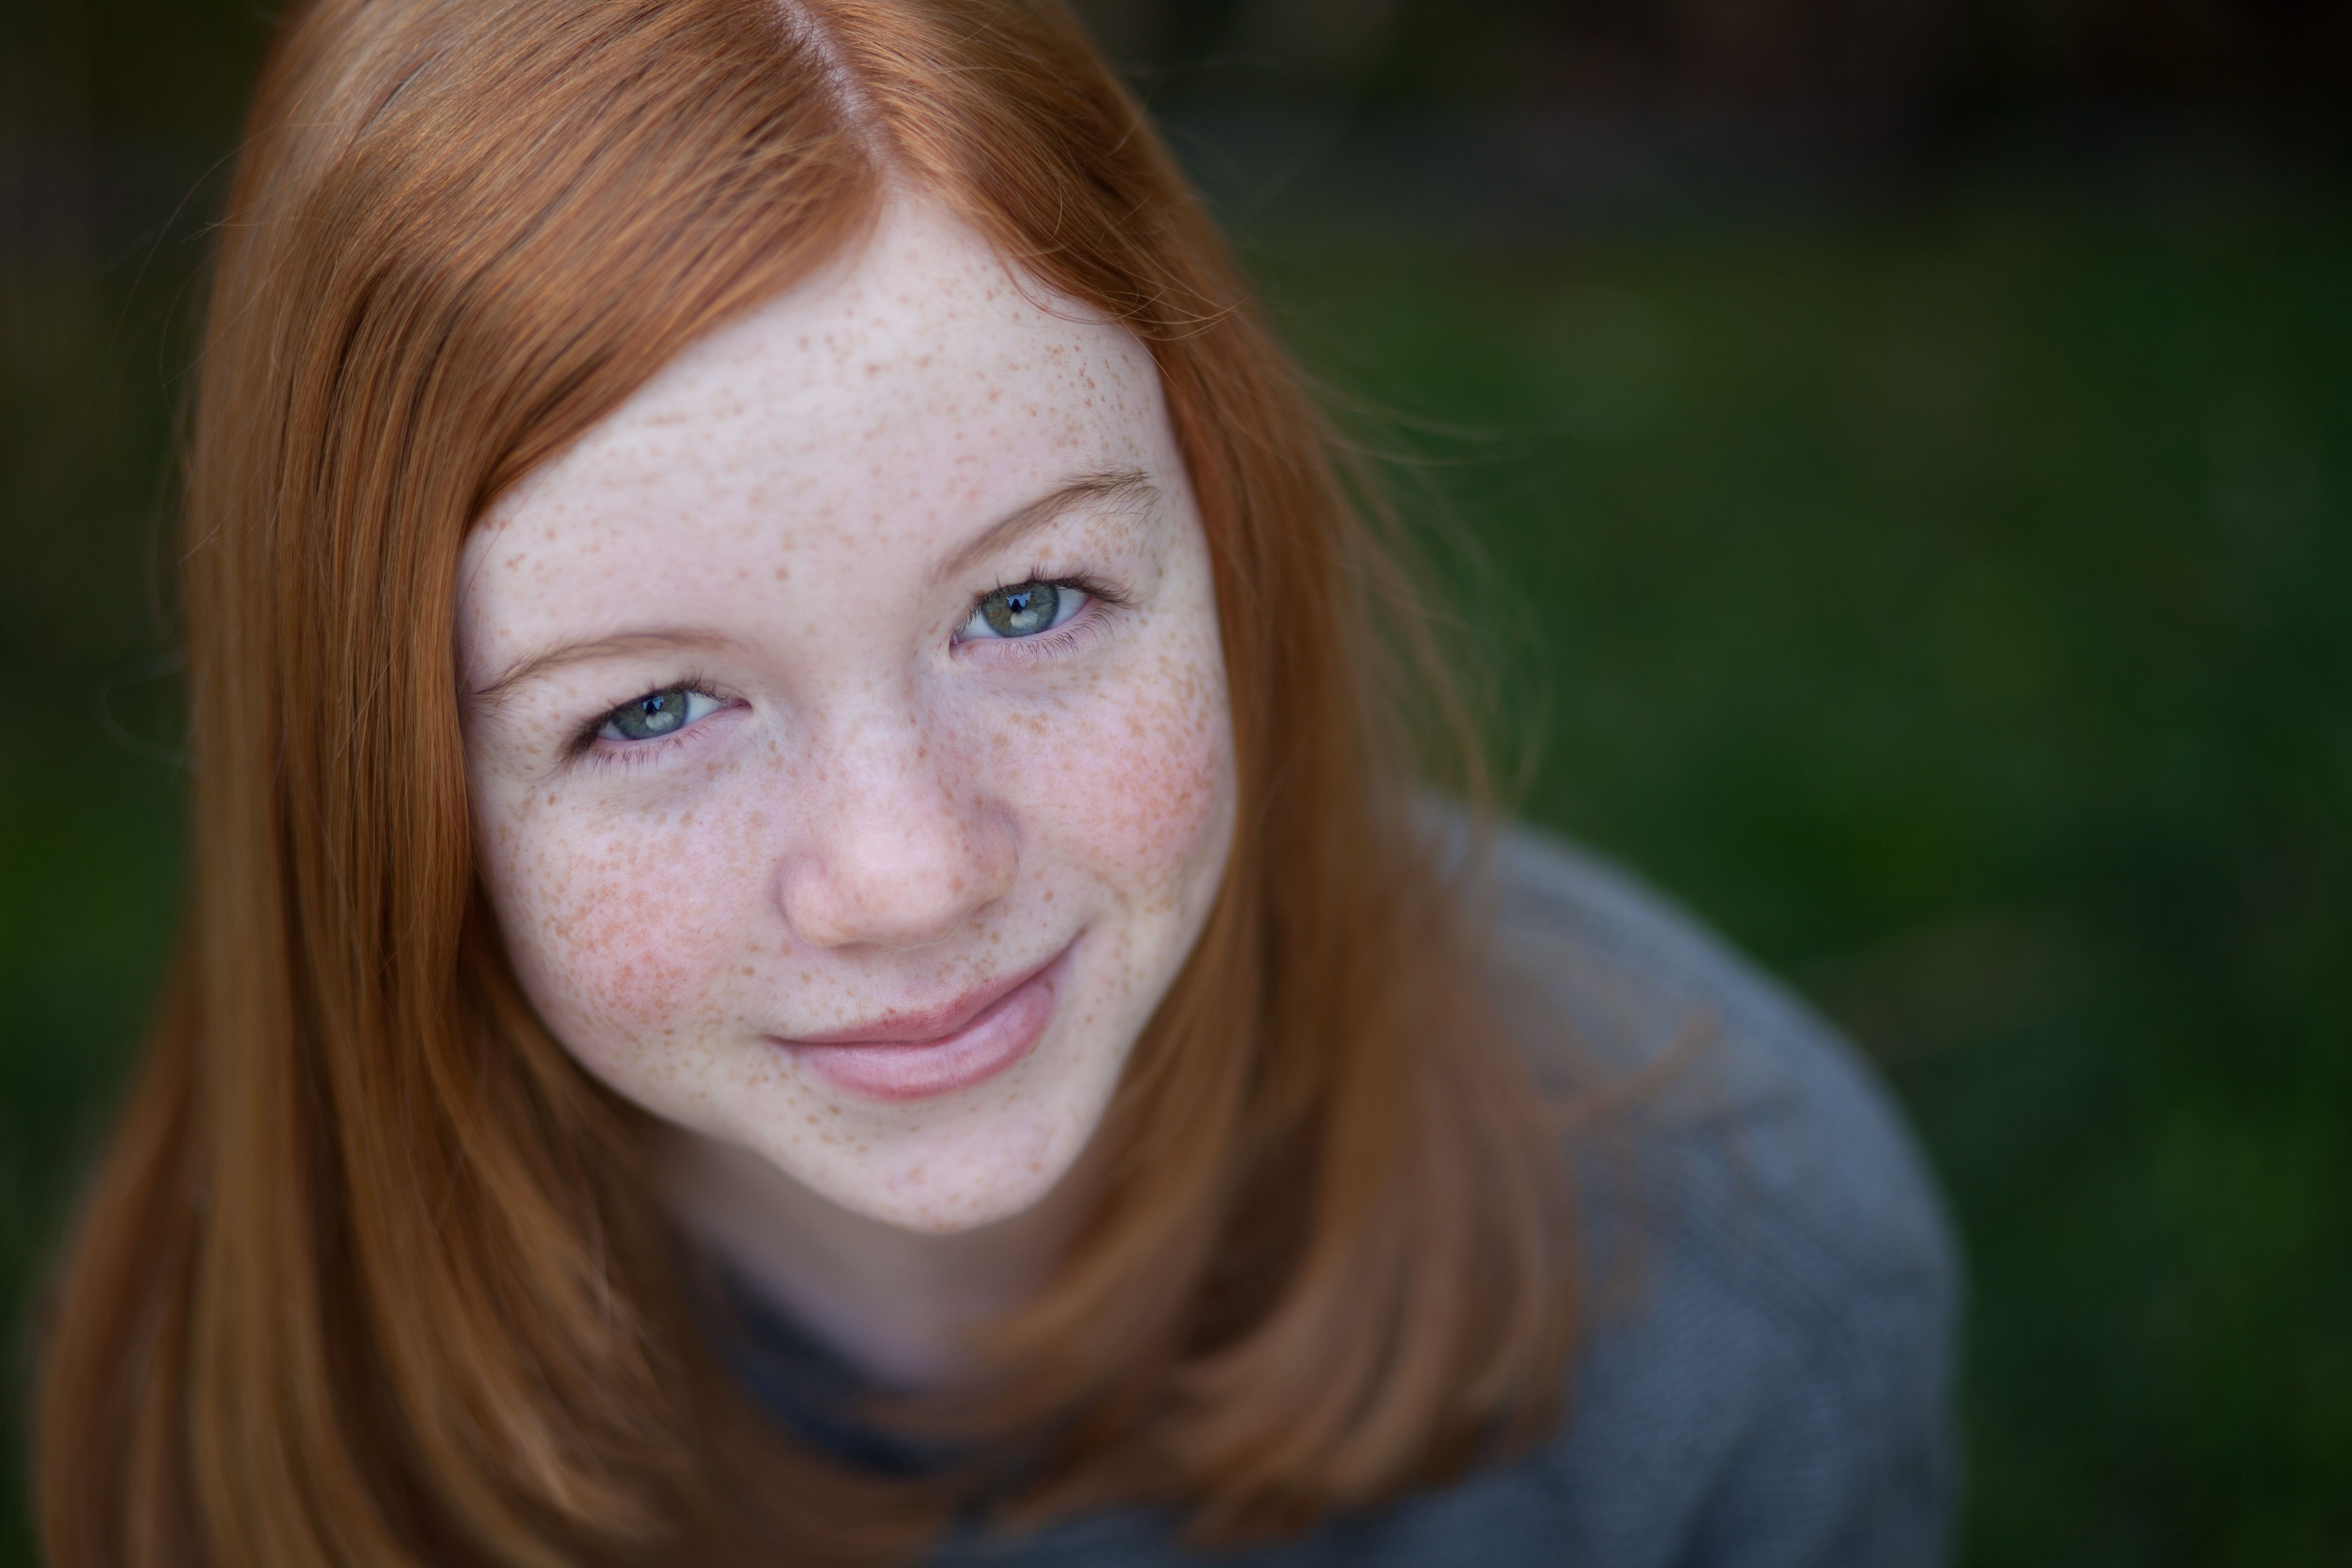 Abby Donnelly on myCast - Fan Casting Your Favorite Stories